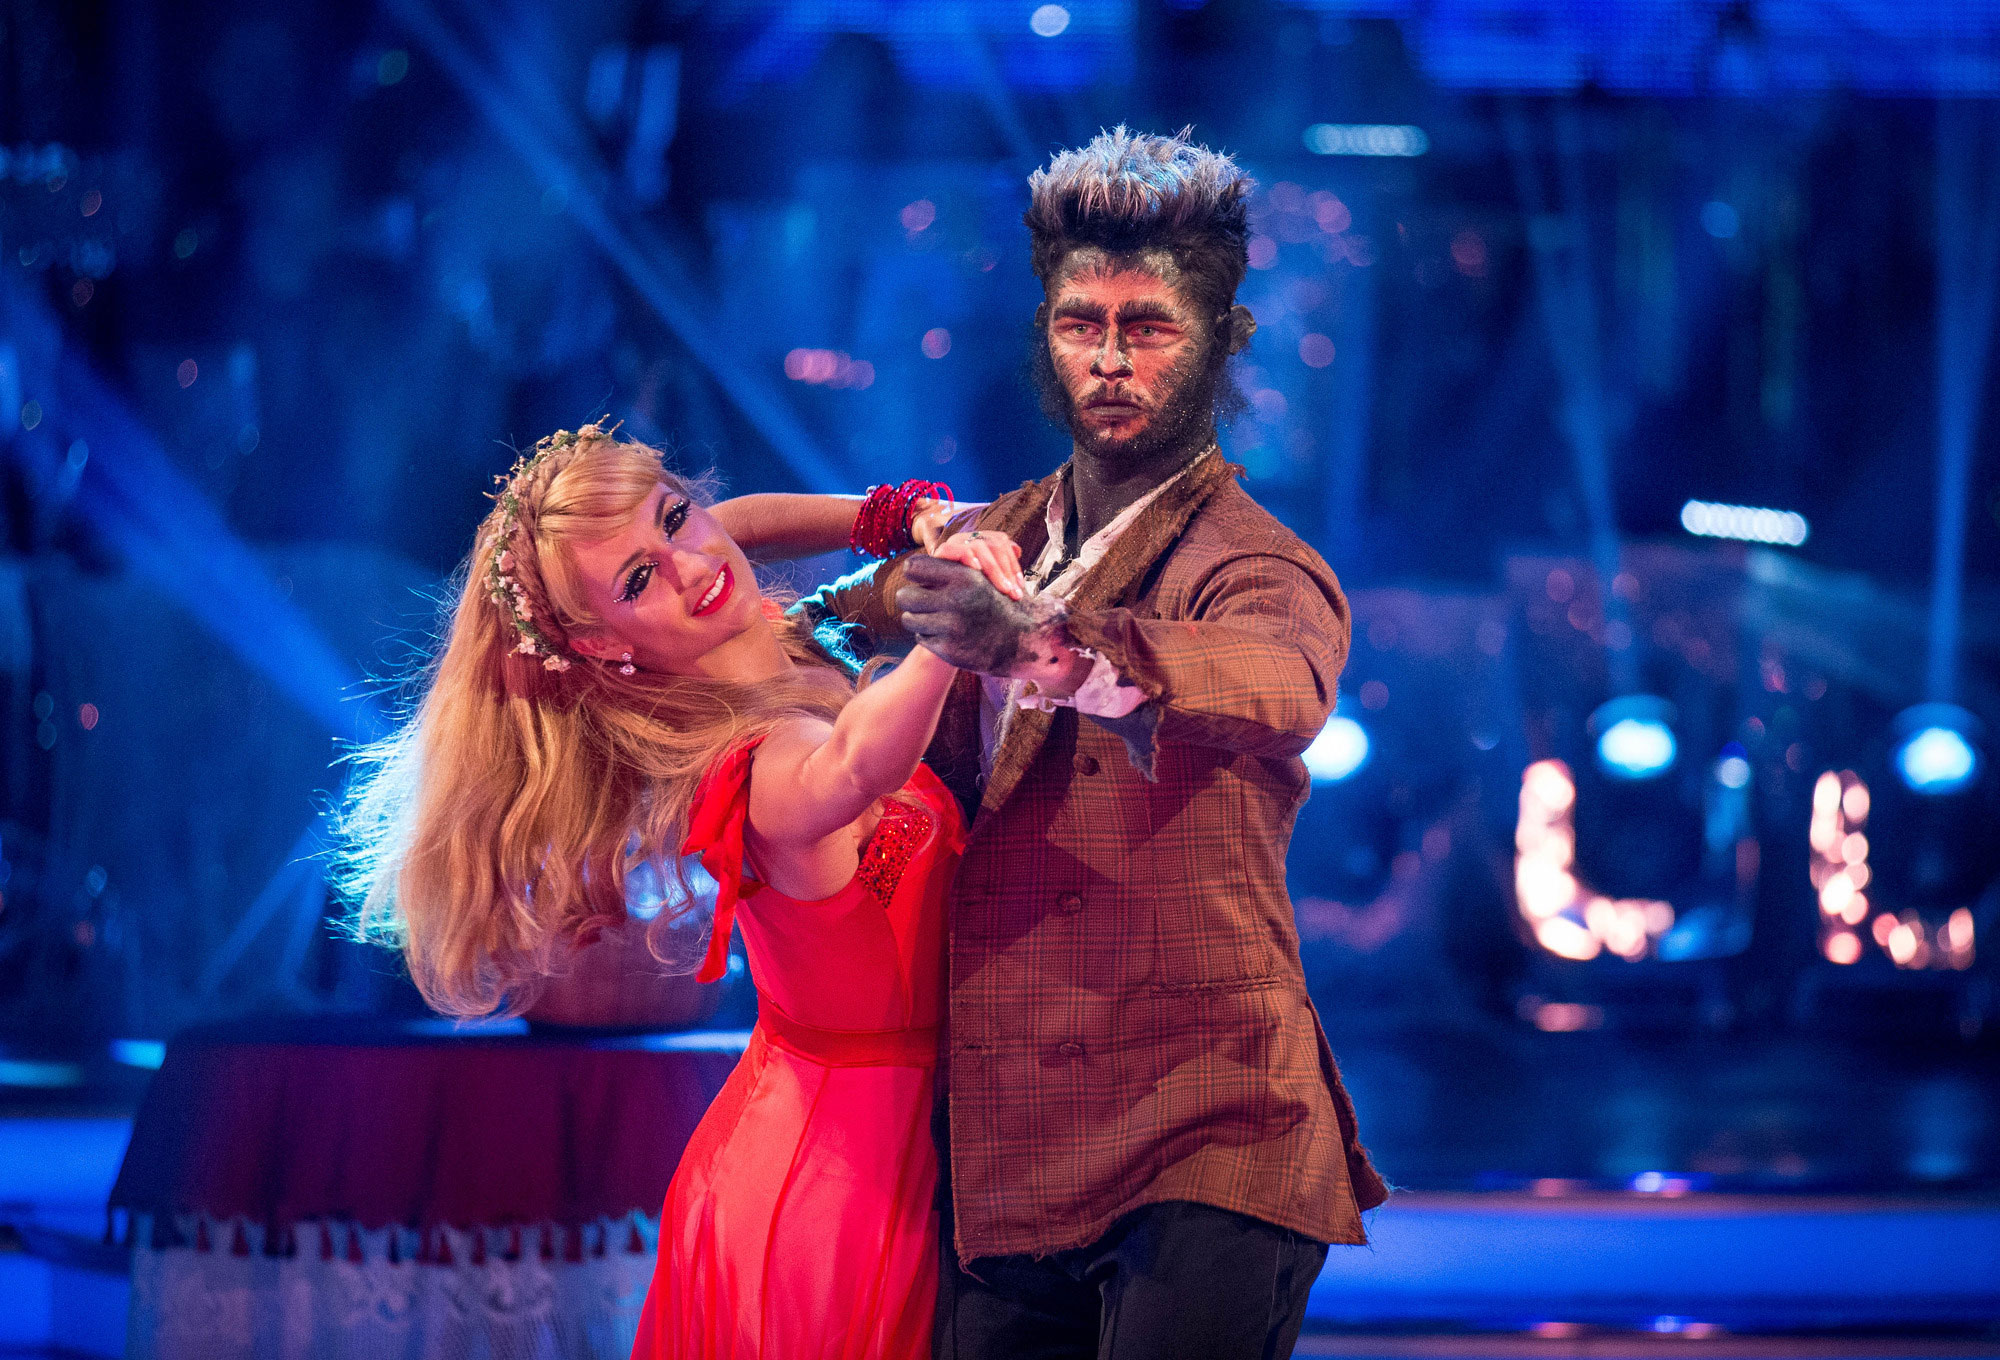 Strictly Come Dancing: Jay and Aliona 'rowing' over his flirty texts sent to other dancers